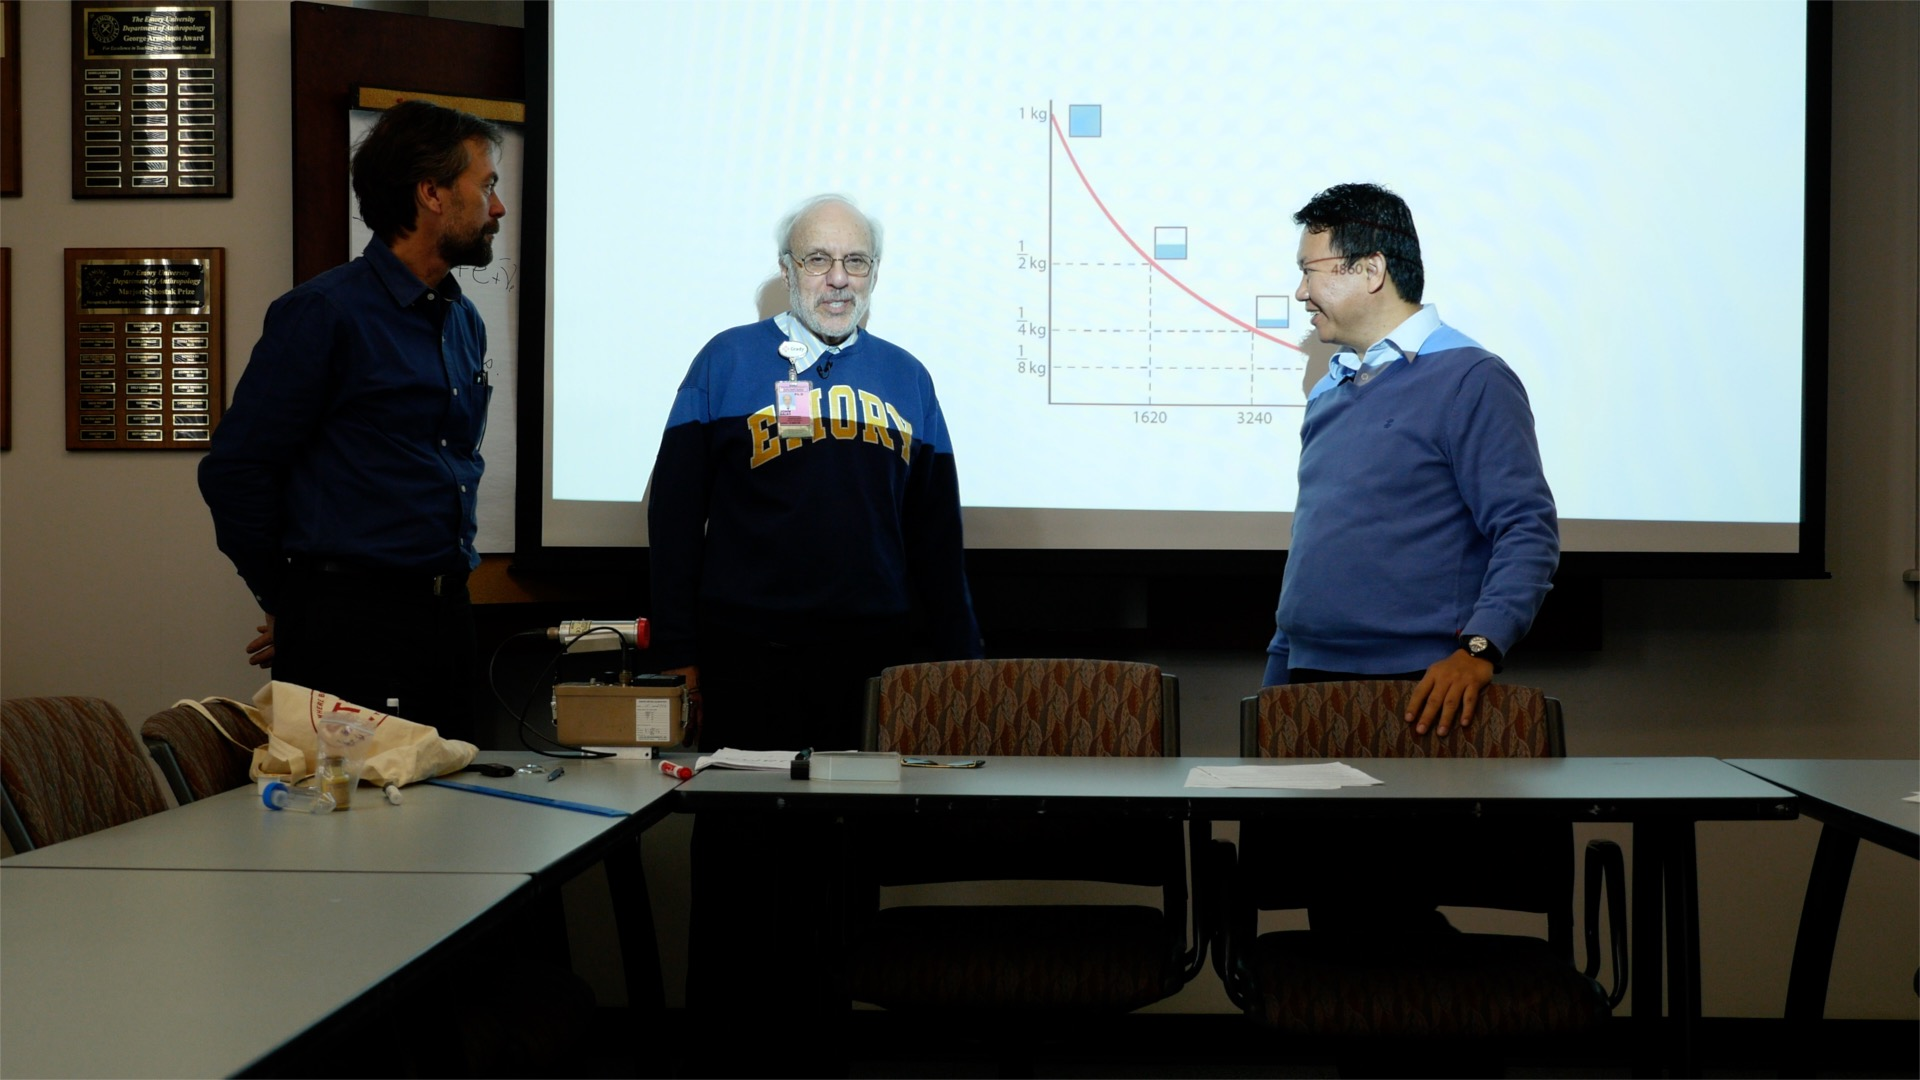 (from left) H. Jacobs with physicist John Malko and interpreter Tsondue Samphel.